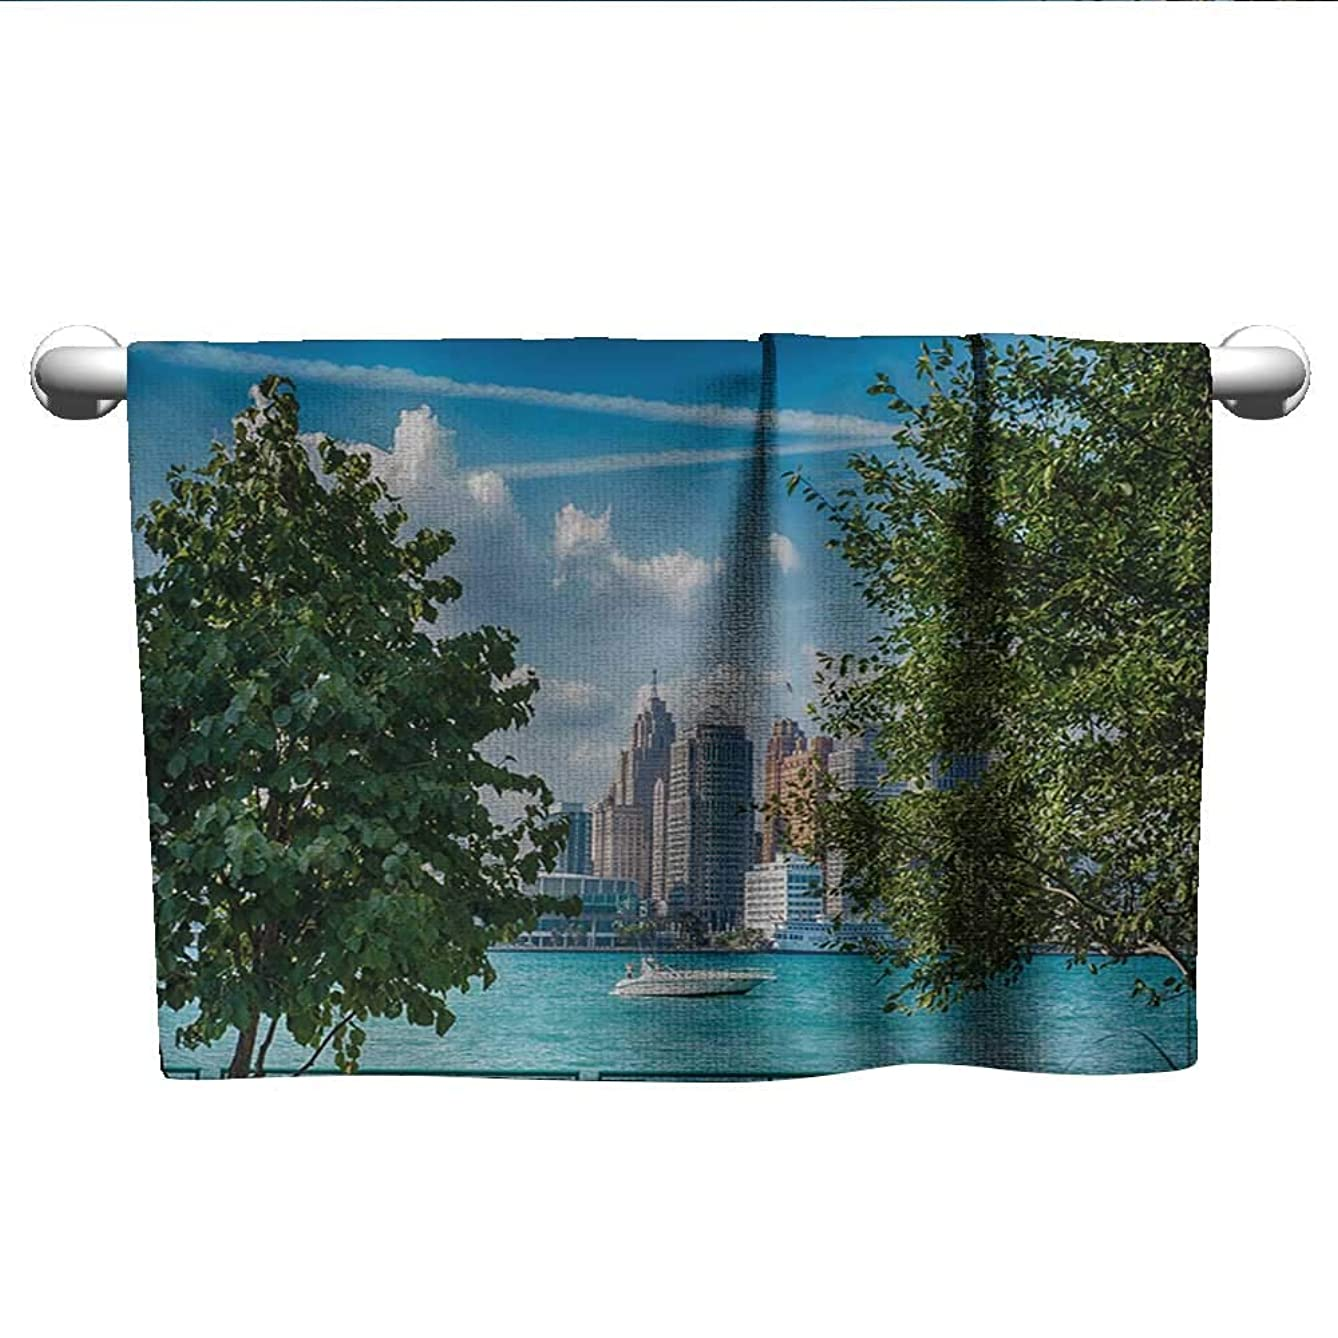 Detroit,Kids Bath Towels Detroit Sightseeing on a Summer Afternoon Modern Architecture River and Boat Quick Dry Towel Green Blue Aqua W 10